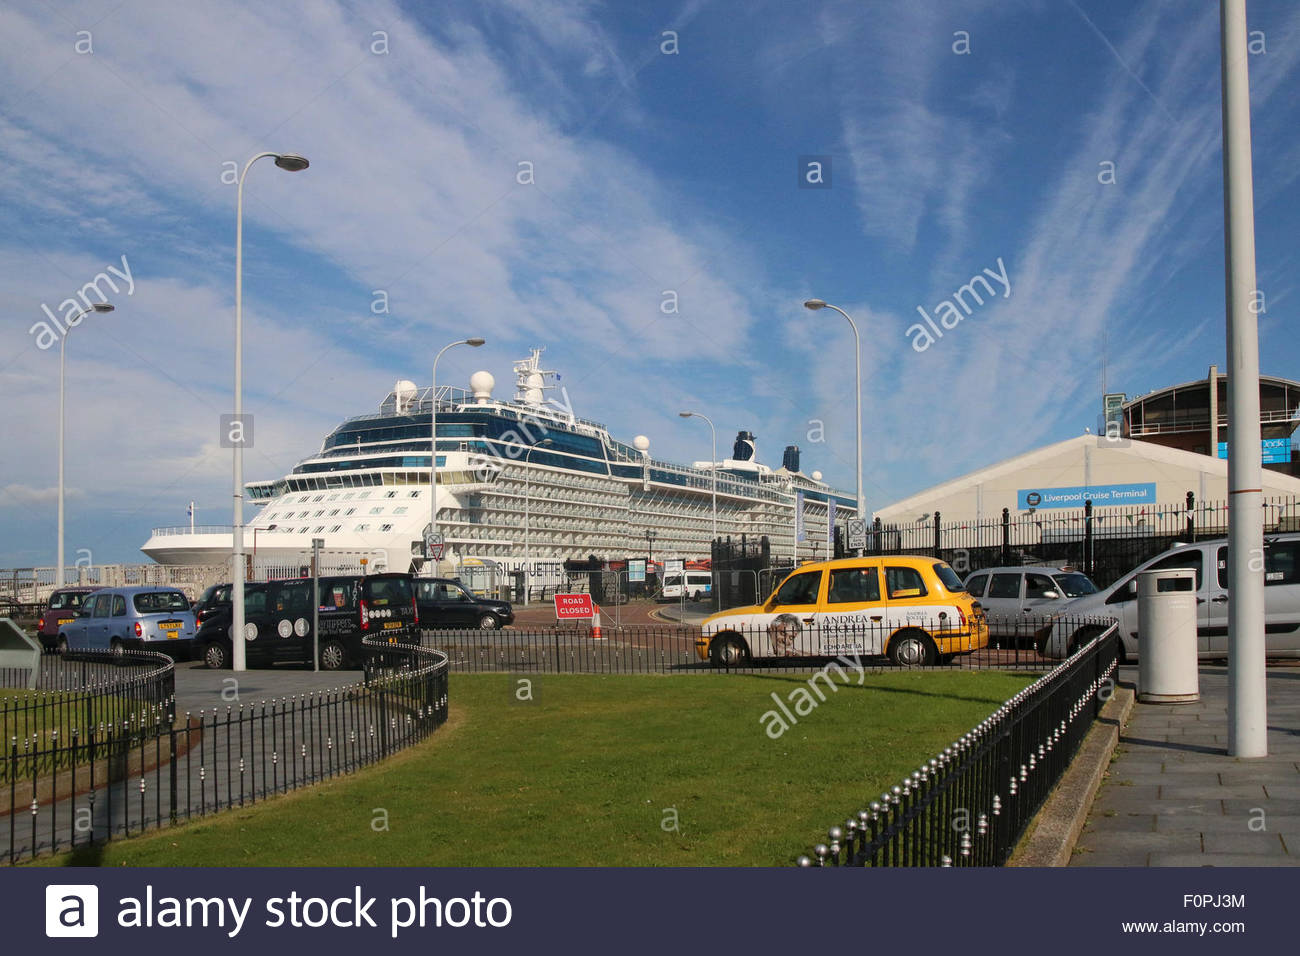 Liverpool, UK 19th August 2015. Against the vivid blue sky the sun shines on the cruise boat moored at the Liverpool - Stock Image